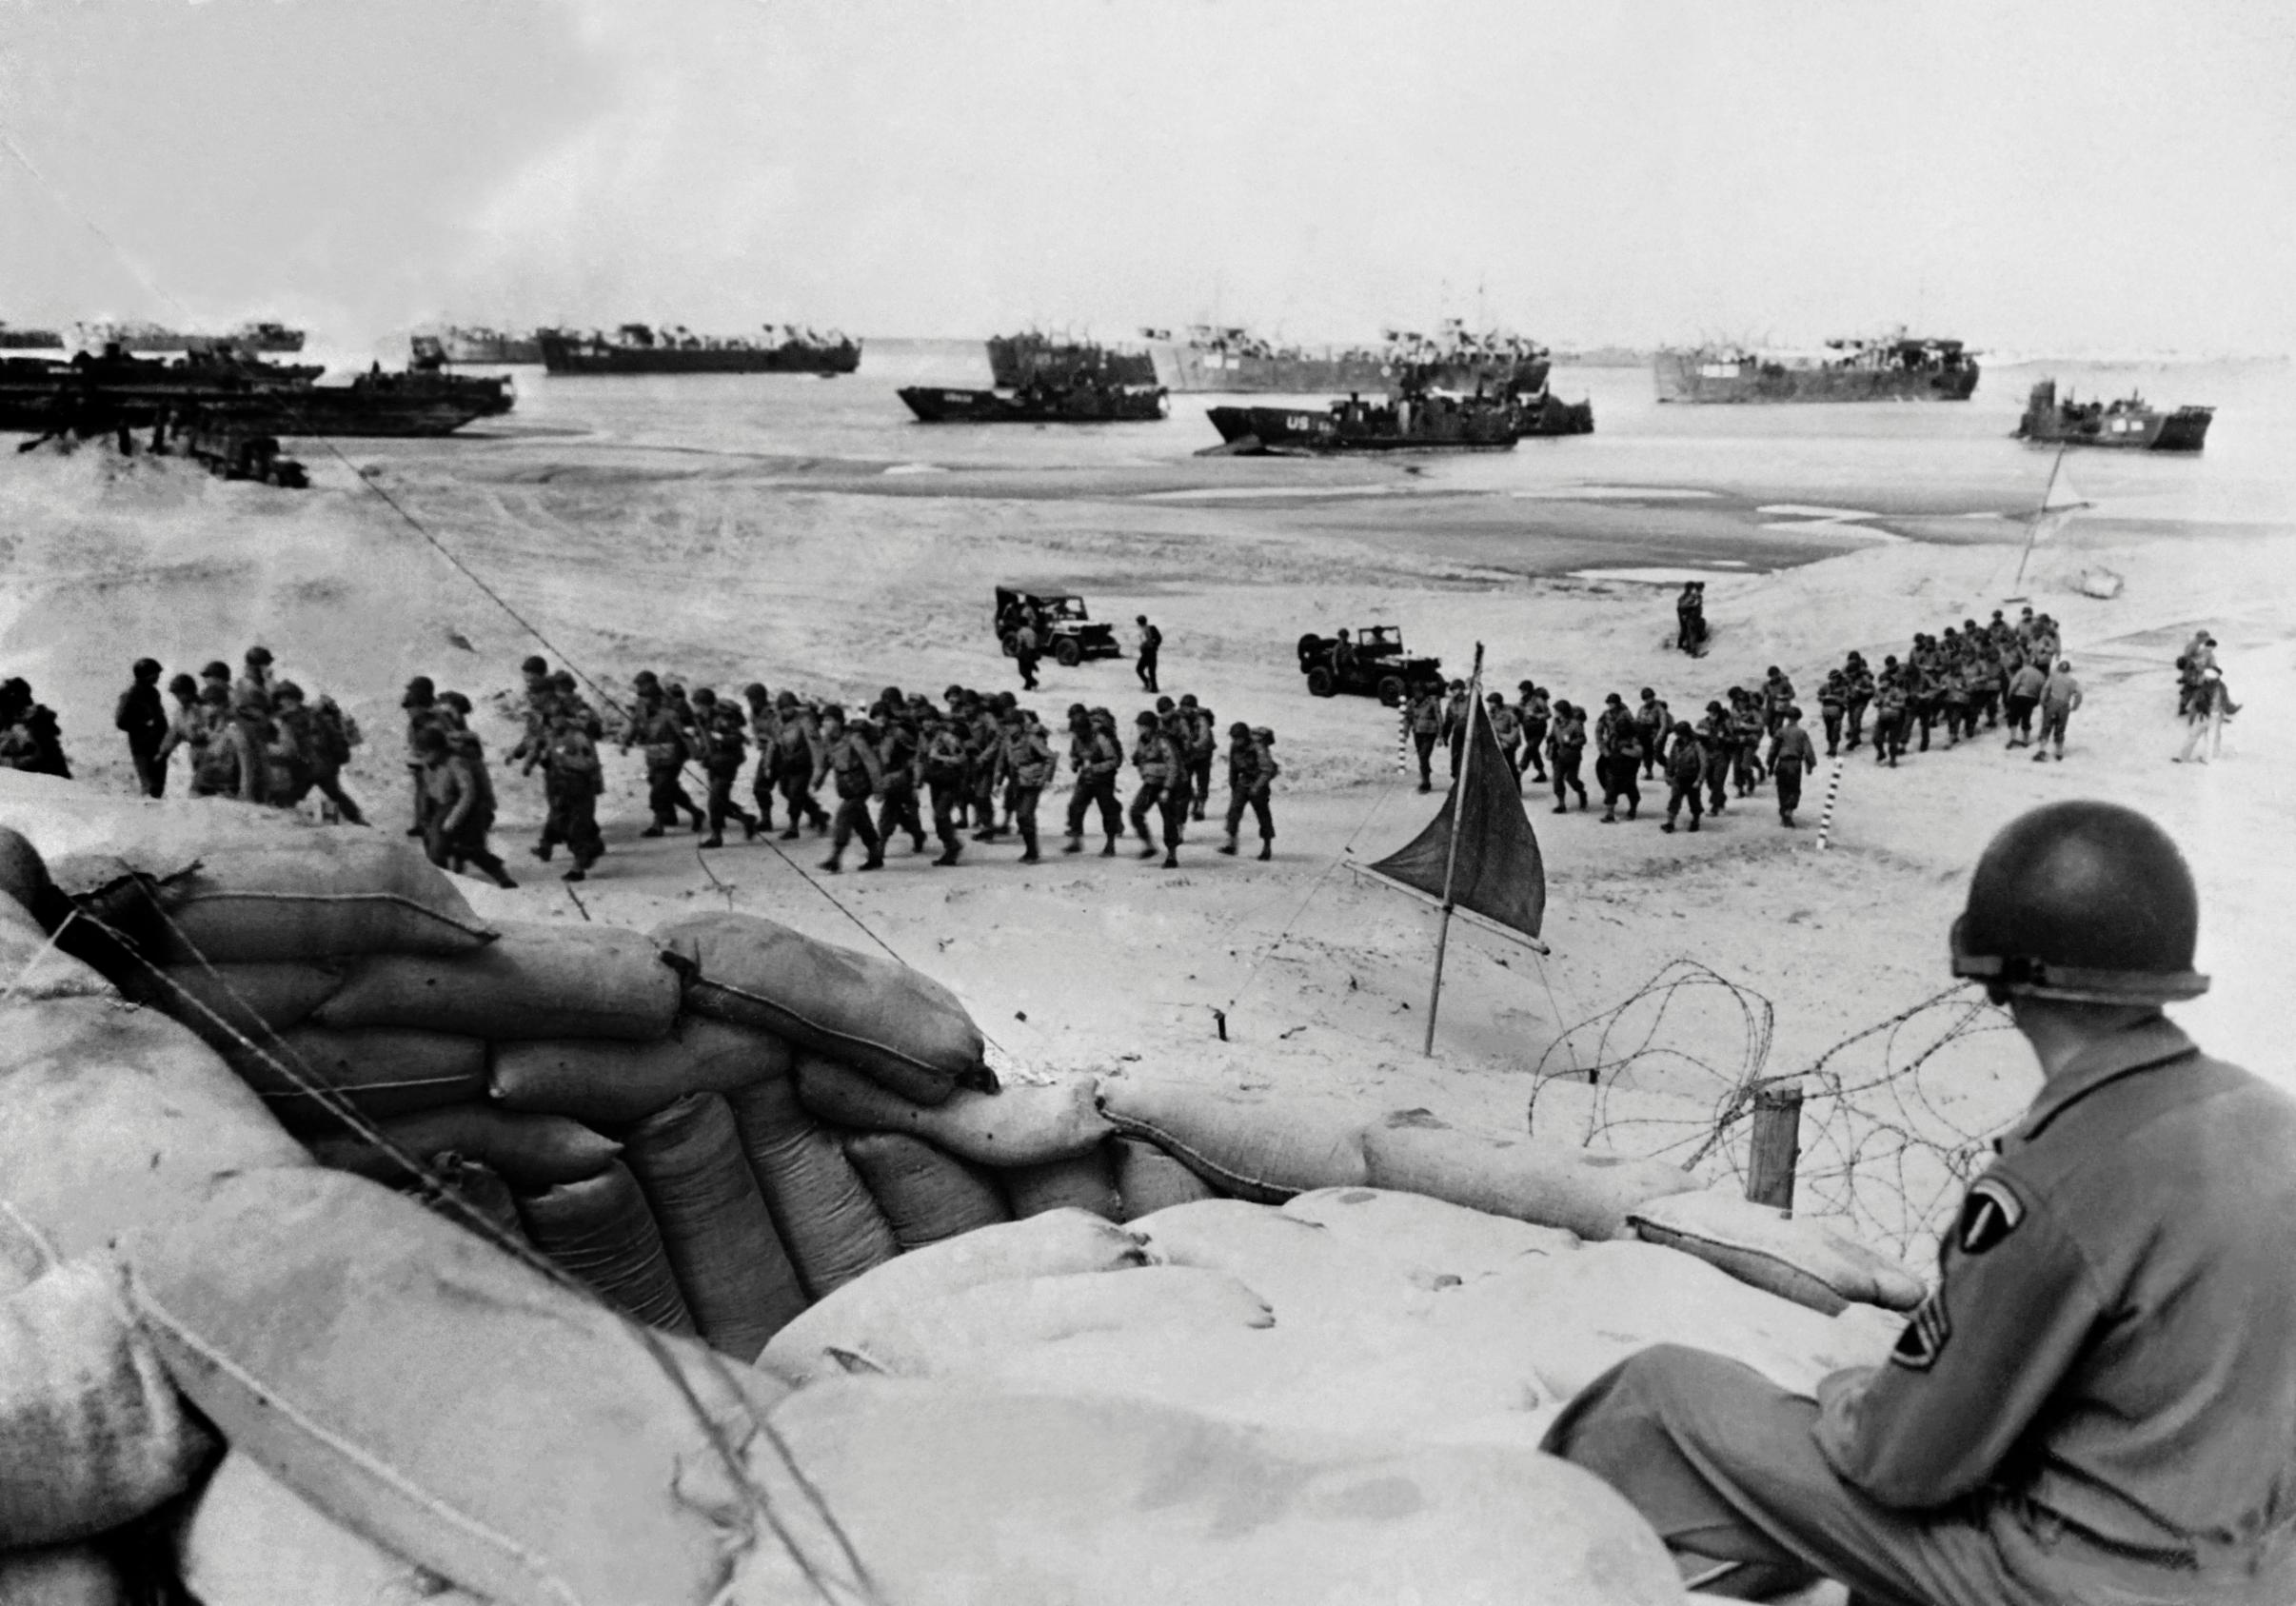 Here's what happened on D-Day, the largest amphibious invasion ever undertaken